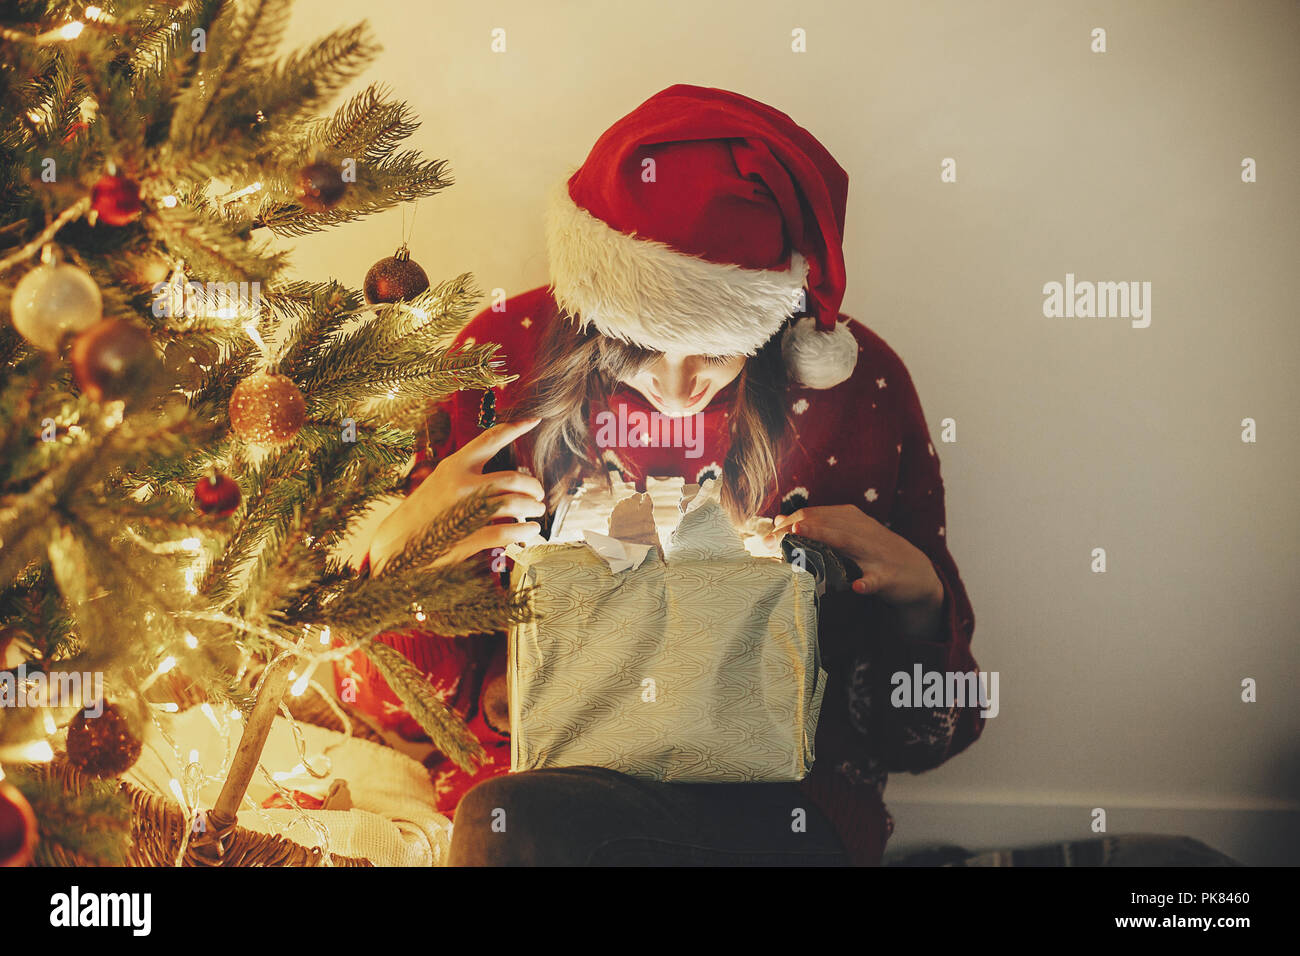 6454fb29f9e2c Merry Christmas. happy girl in santa hat opening magic Christmas gift box  at golden beautiful christmas tree with lights and presents in festive room.